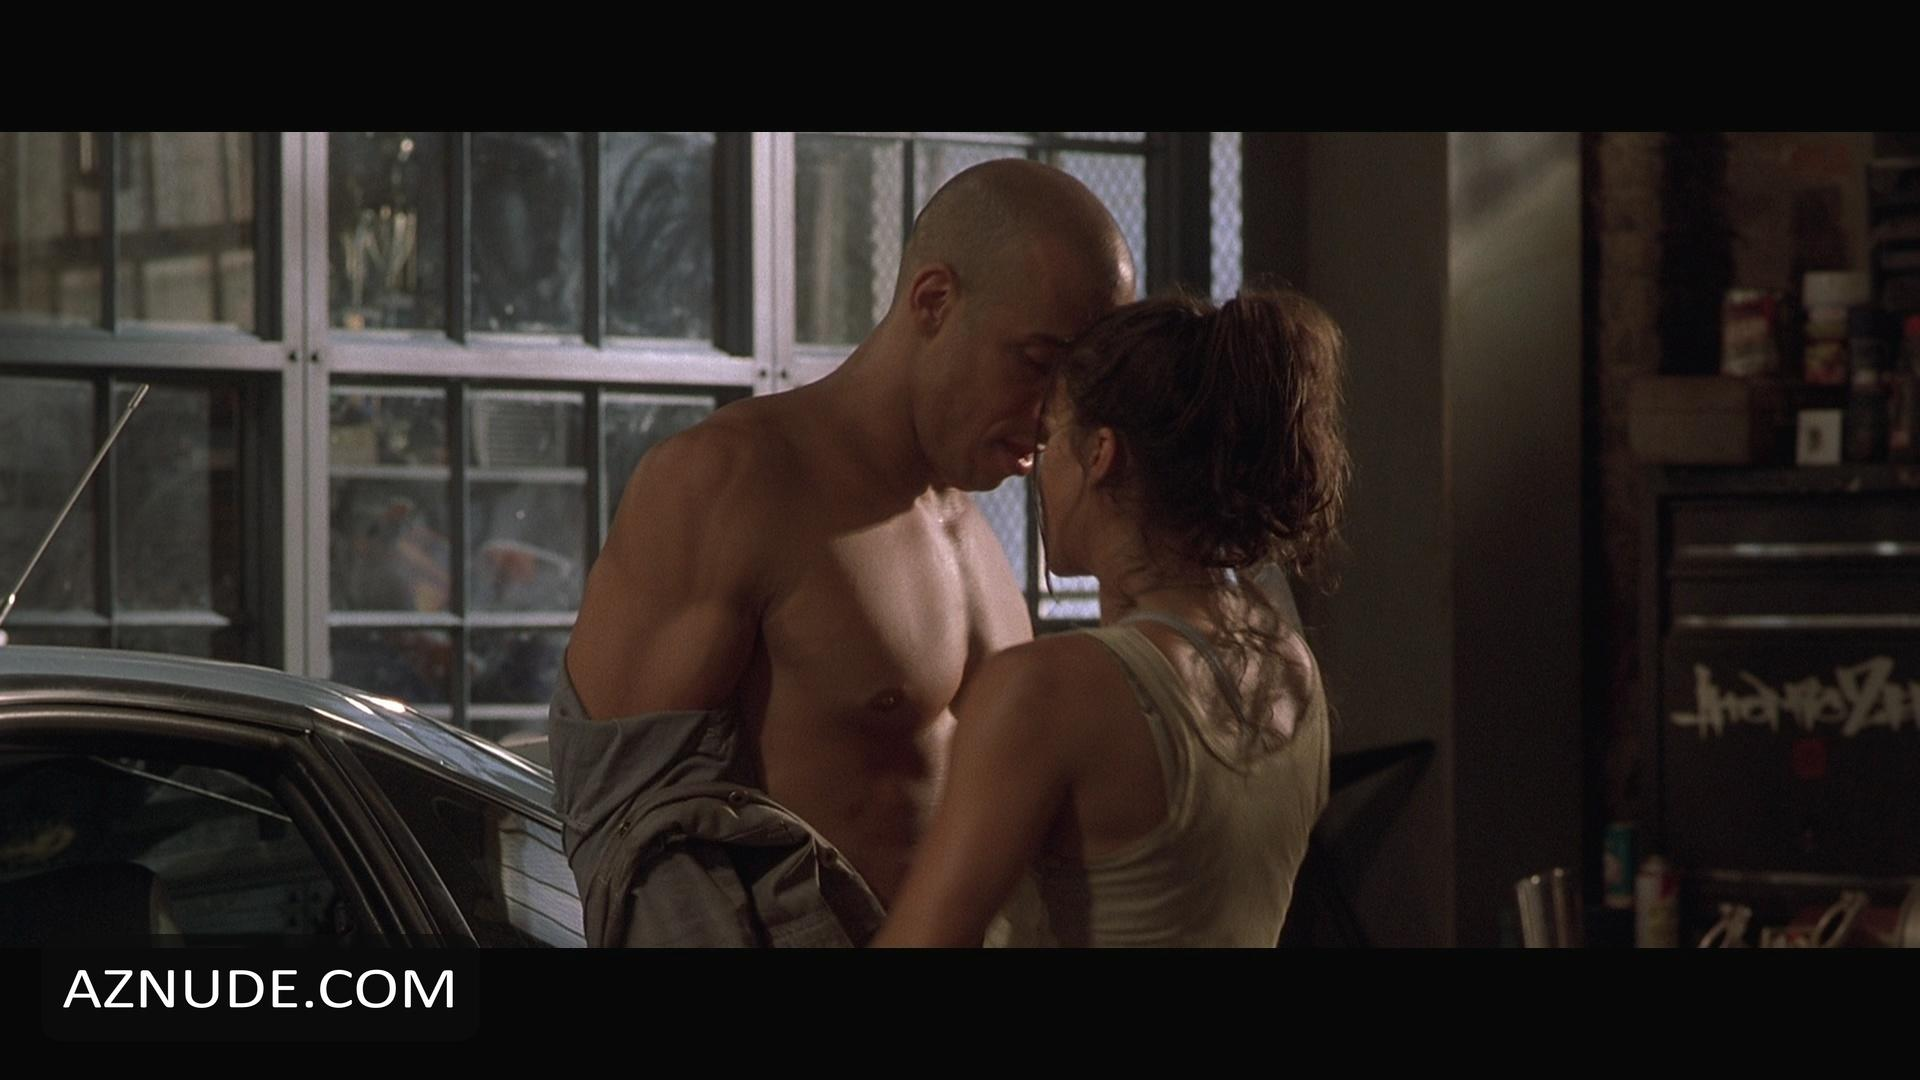 fast and furious nude scene